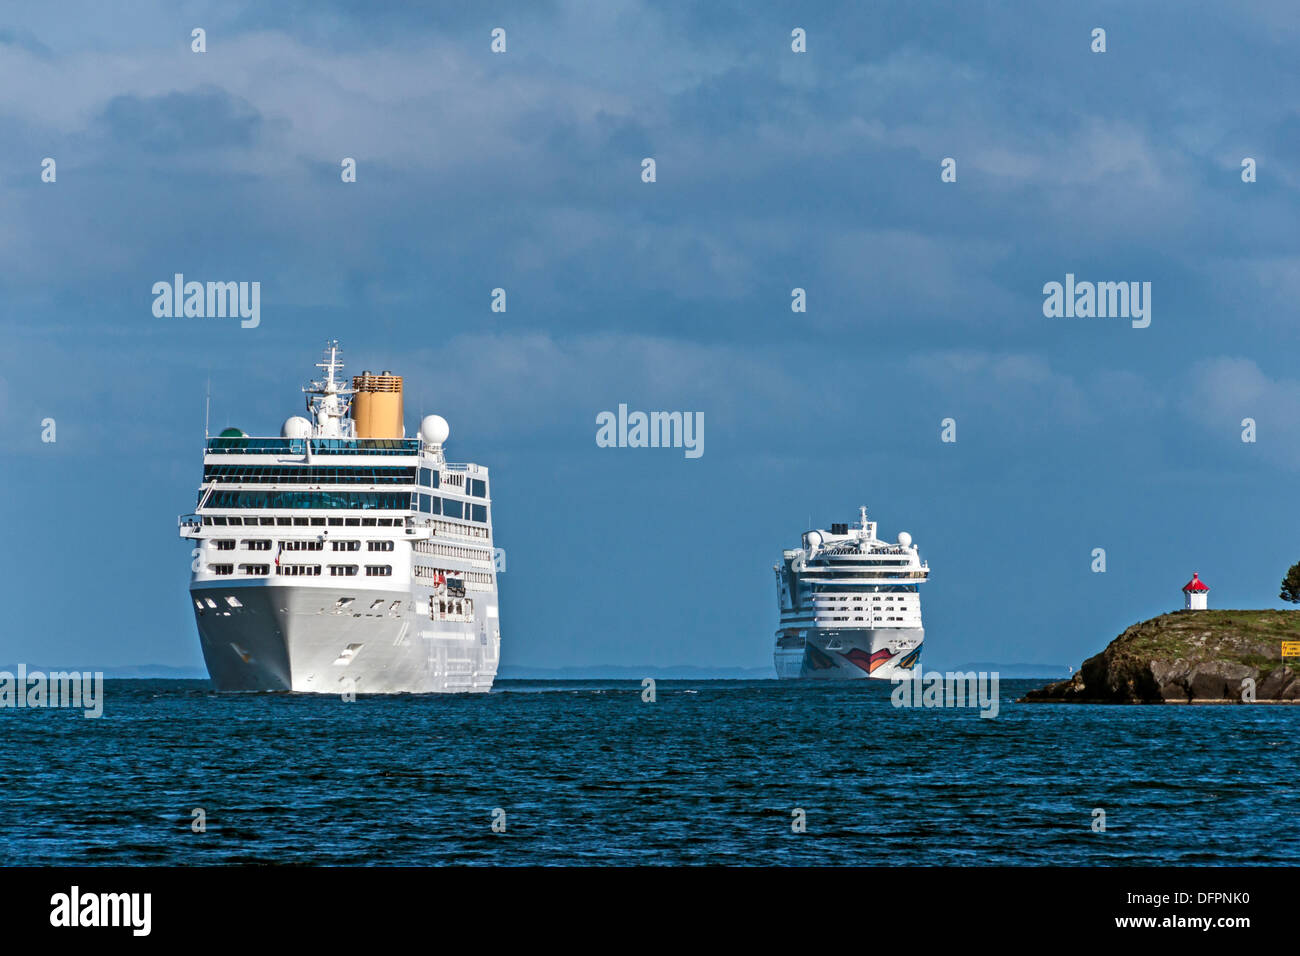 Entrance to Stavanger Harbour Norway with cruise ships Adonia left and Aida approaching Stock Photo